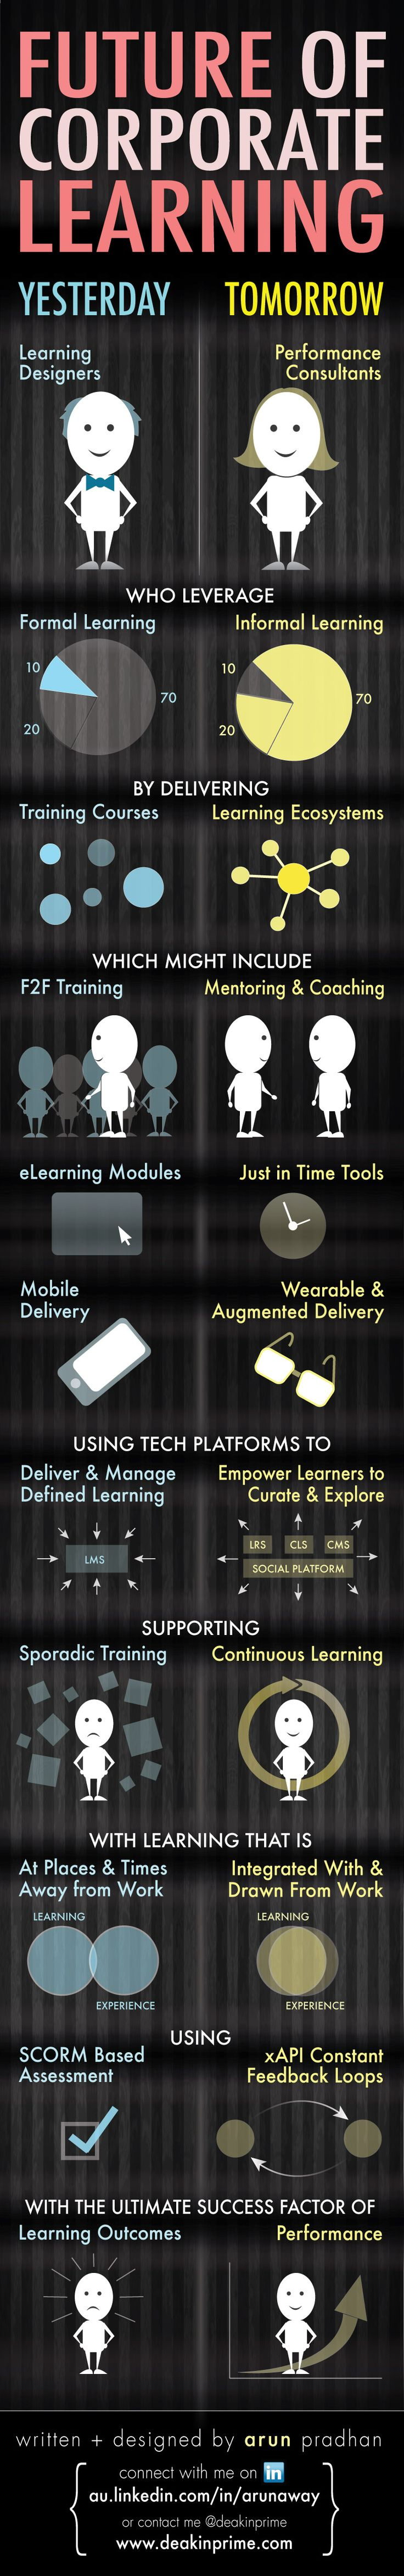 INFOGRAPHIC: The Future of Corporate Learning   arun pradhan   LinkedIn